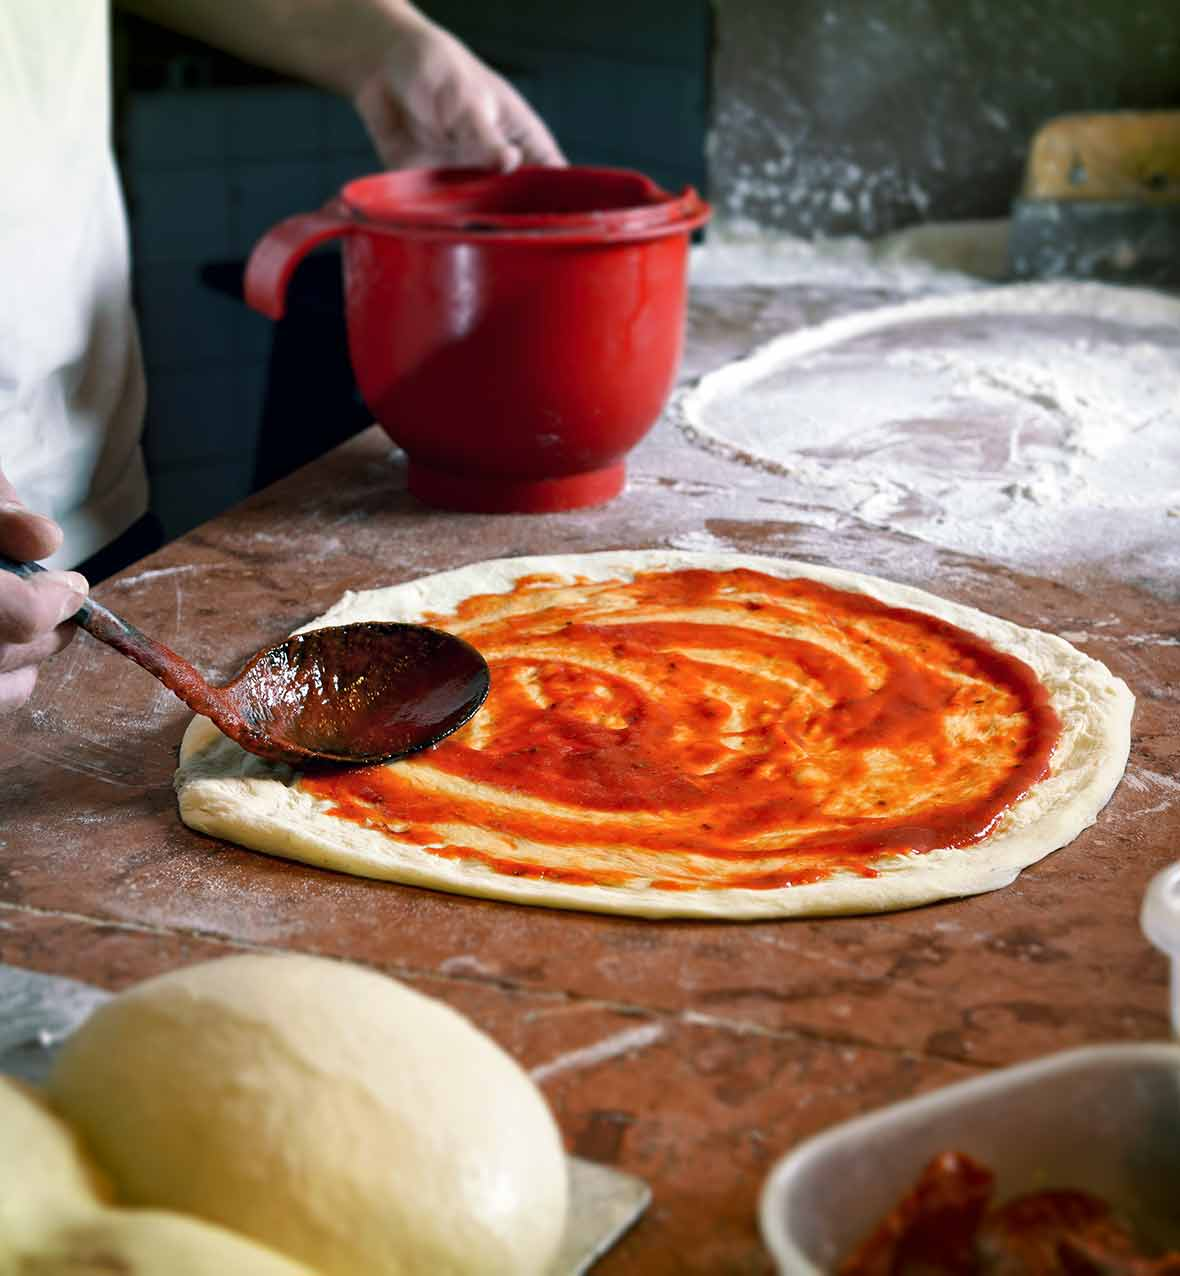 A wooden spoon spreading simple pizza sauce on a round of pizza dough.